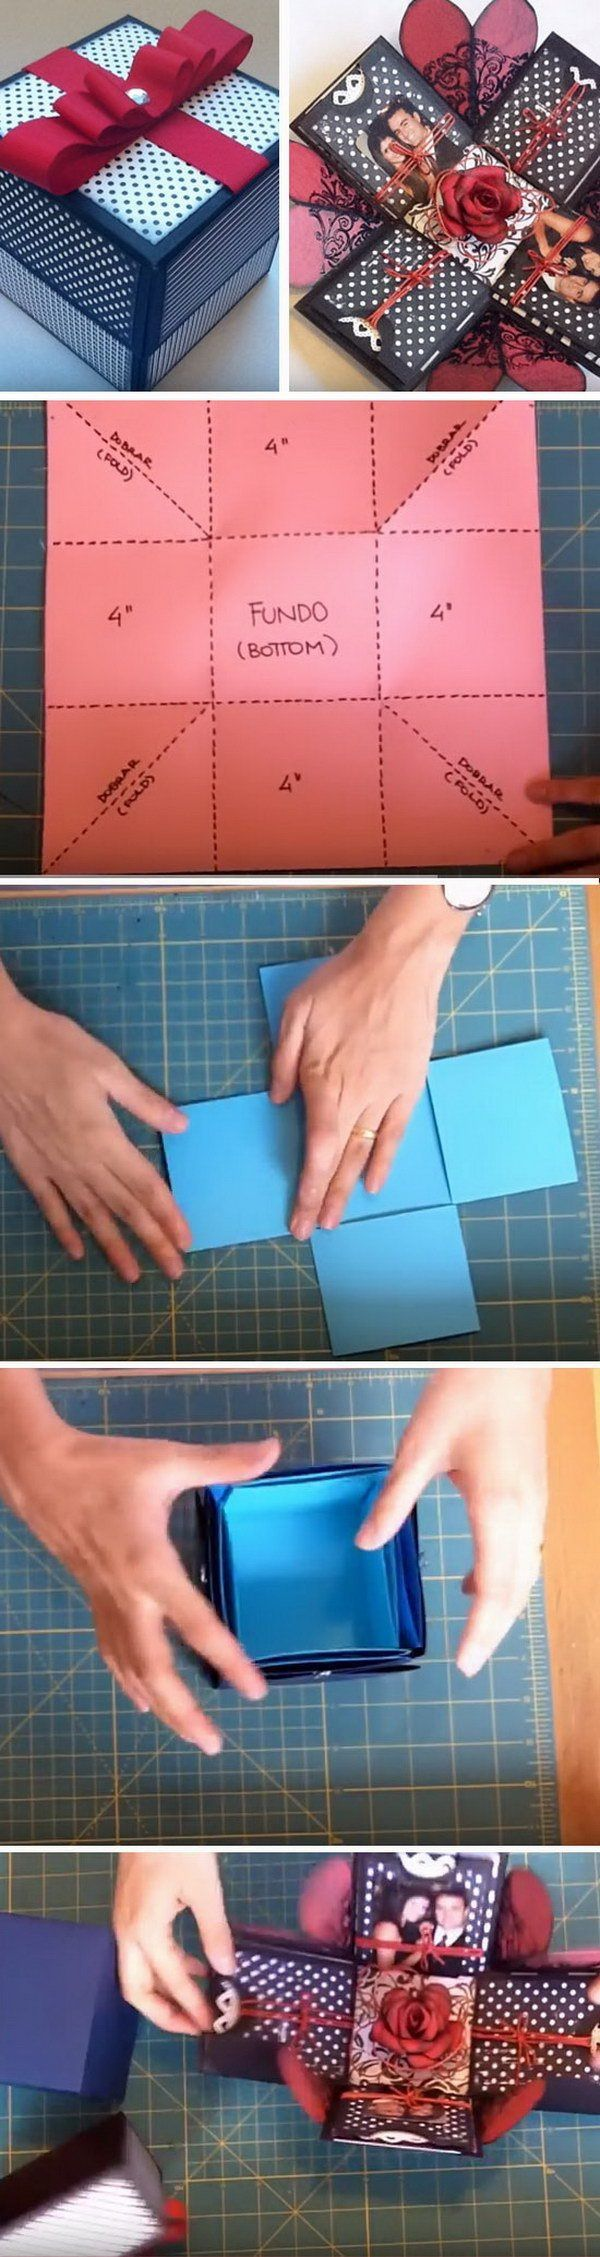 DIY explosion gift box. Explosion gift boxes are the latest trend in do-it-youre